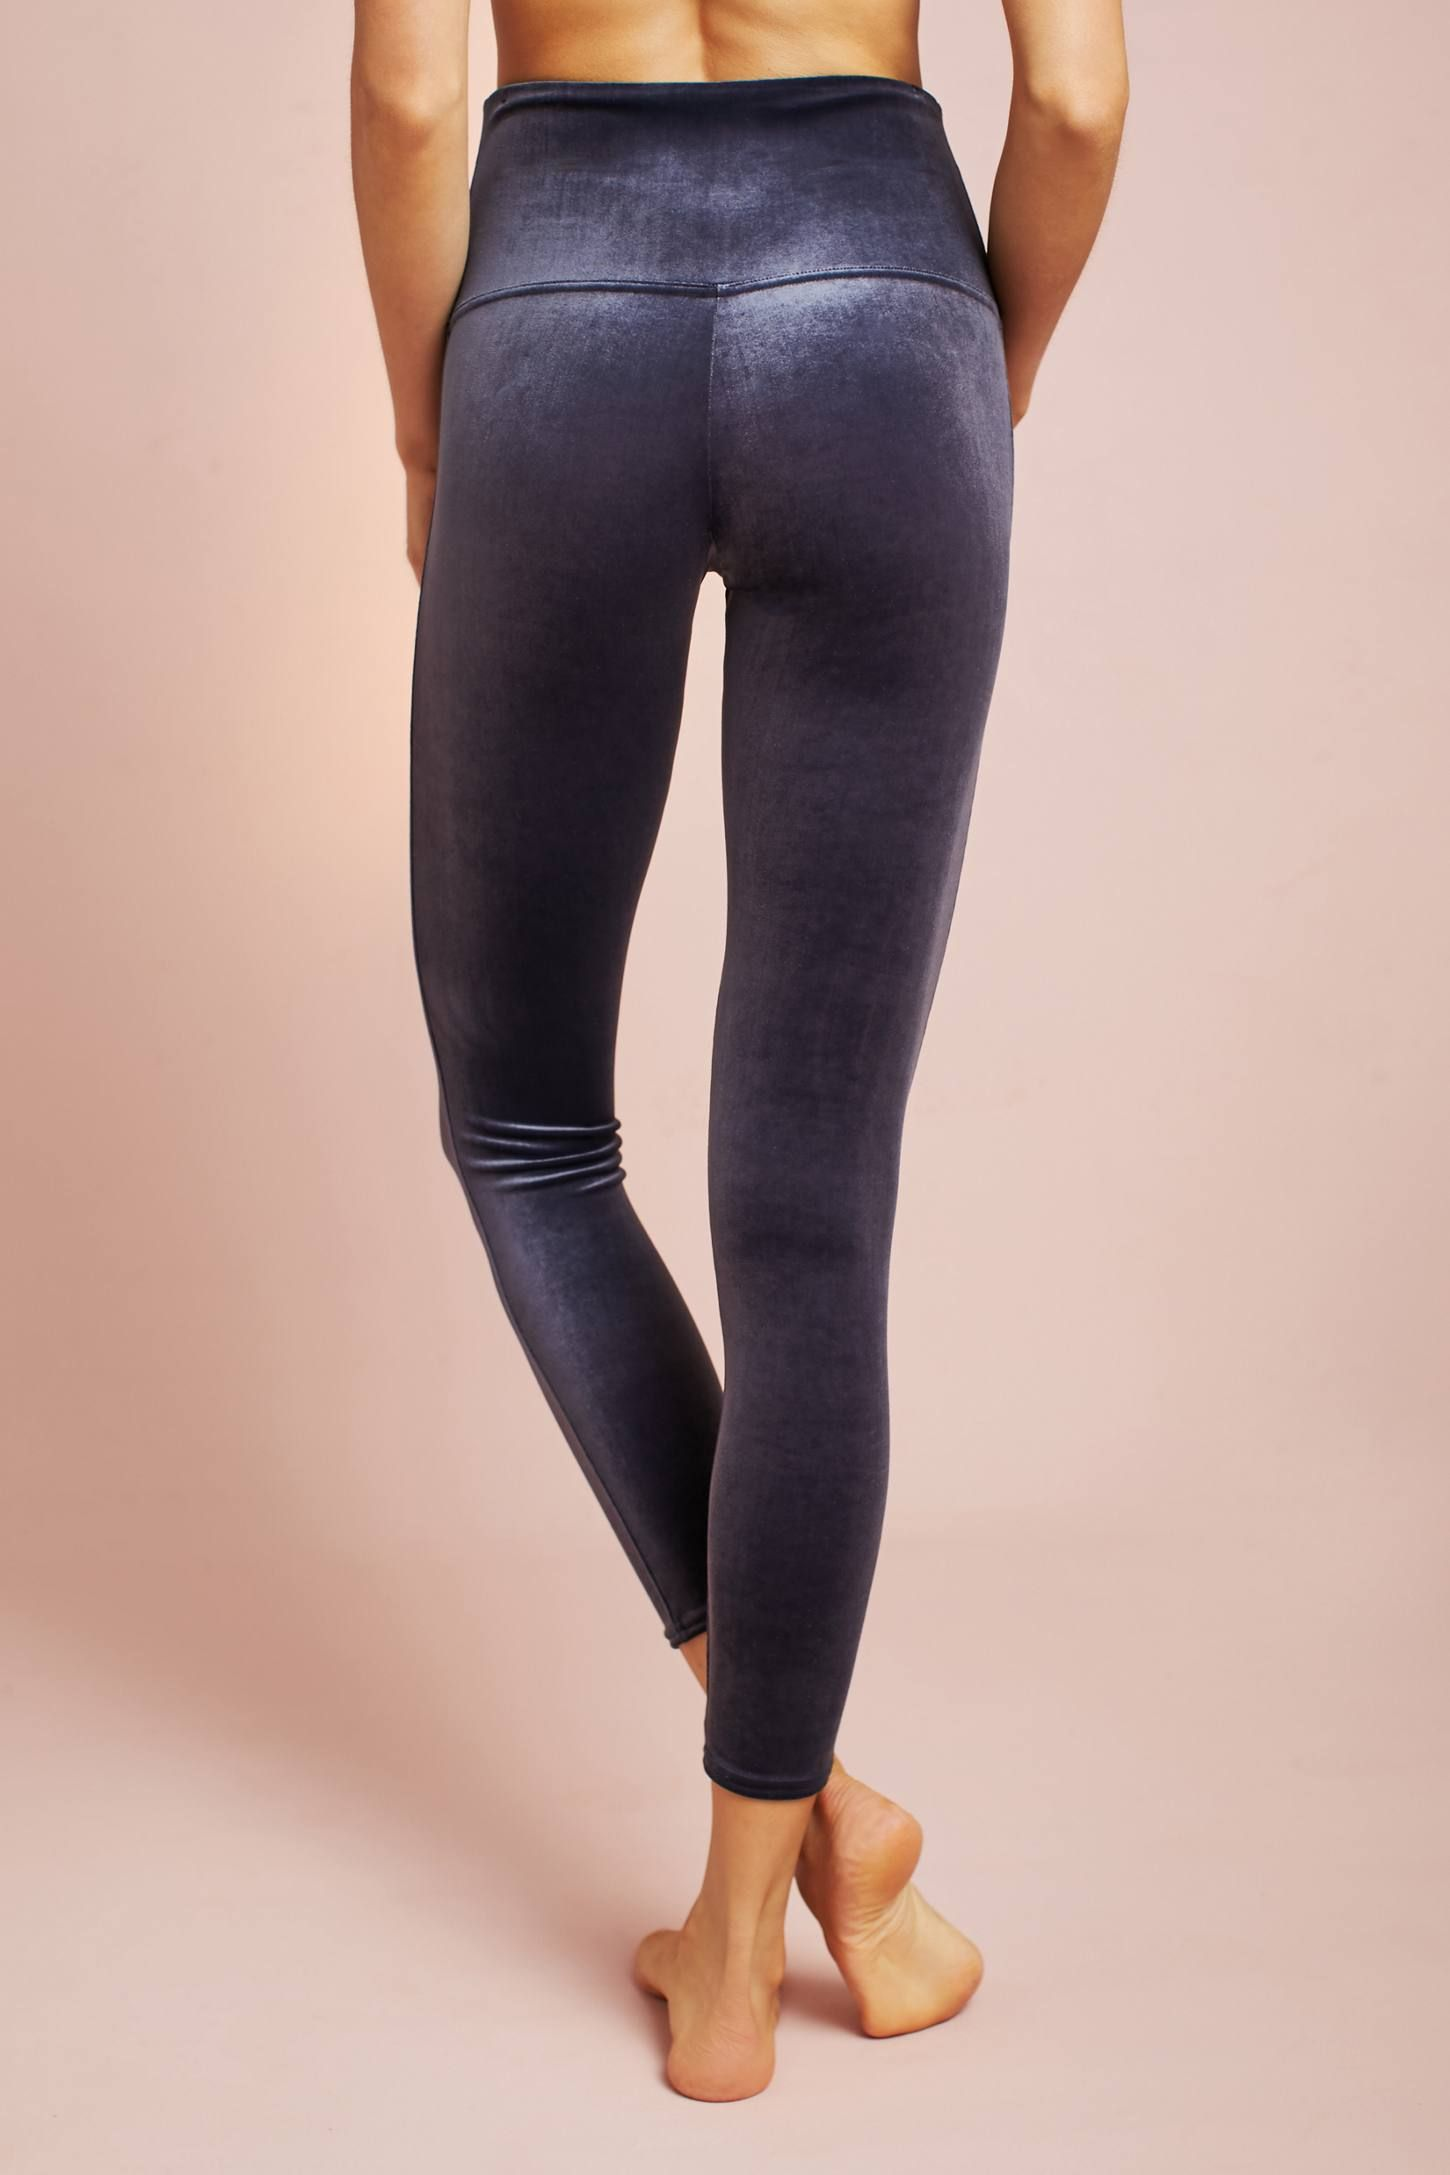 221252aabf658 Shop the Spanx Velvet Leggings and more Anthropologie at Anthropologie  today. Read customer reviews, discover product details and more.